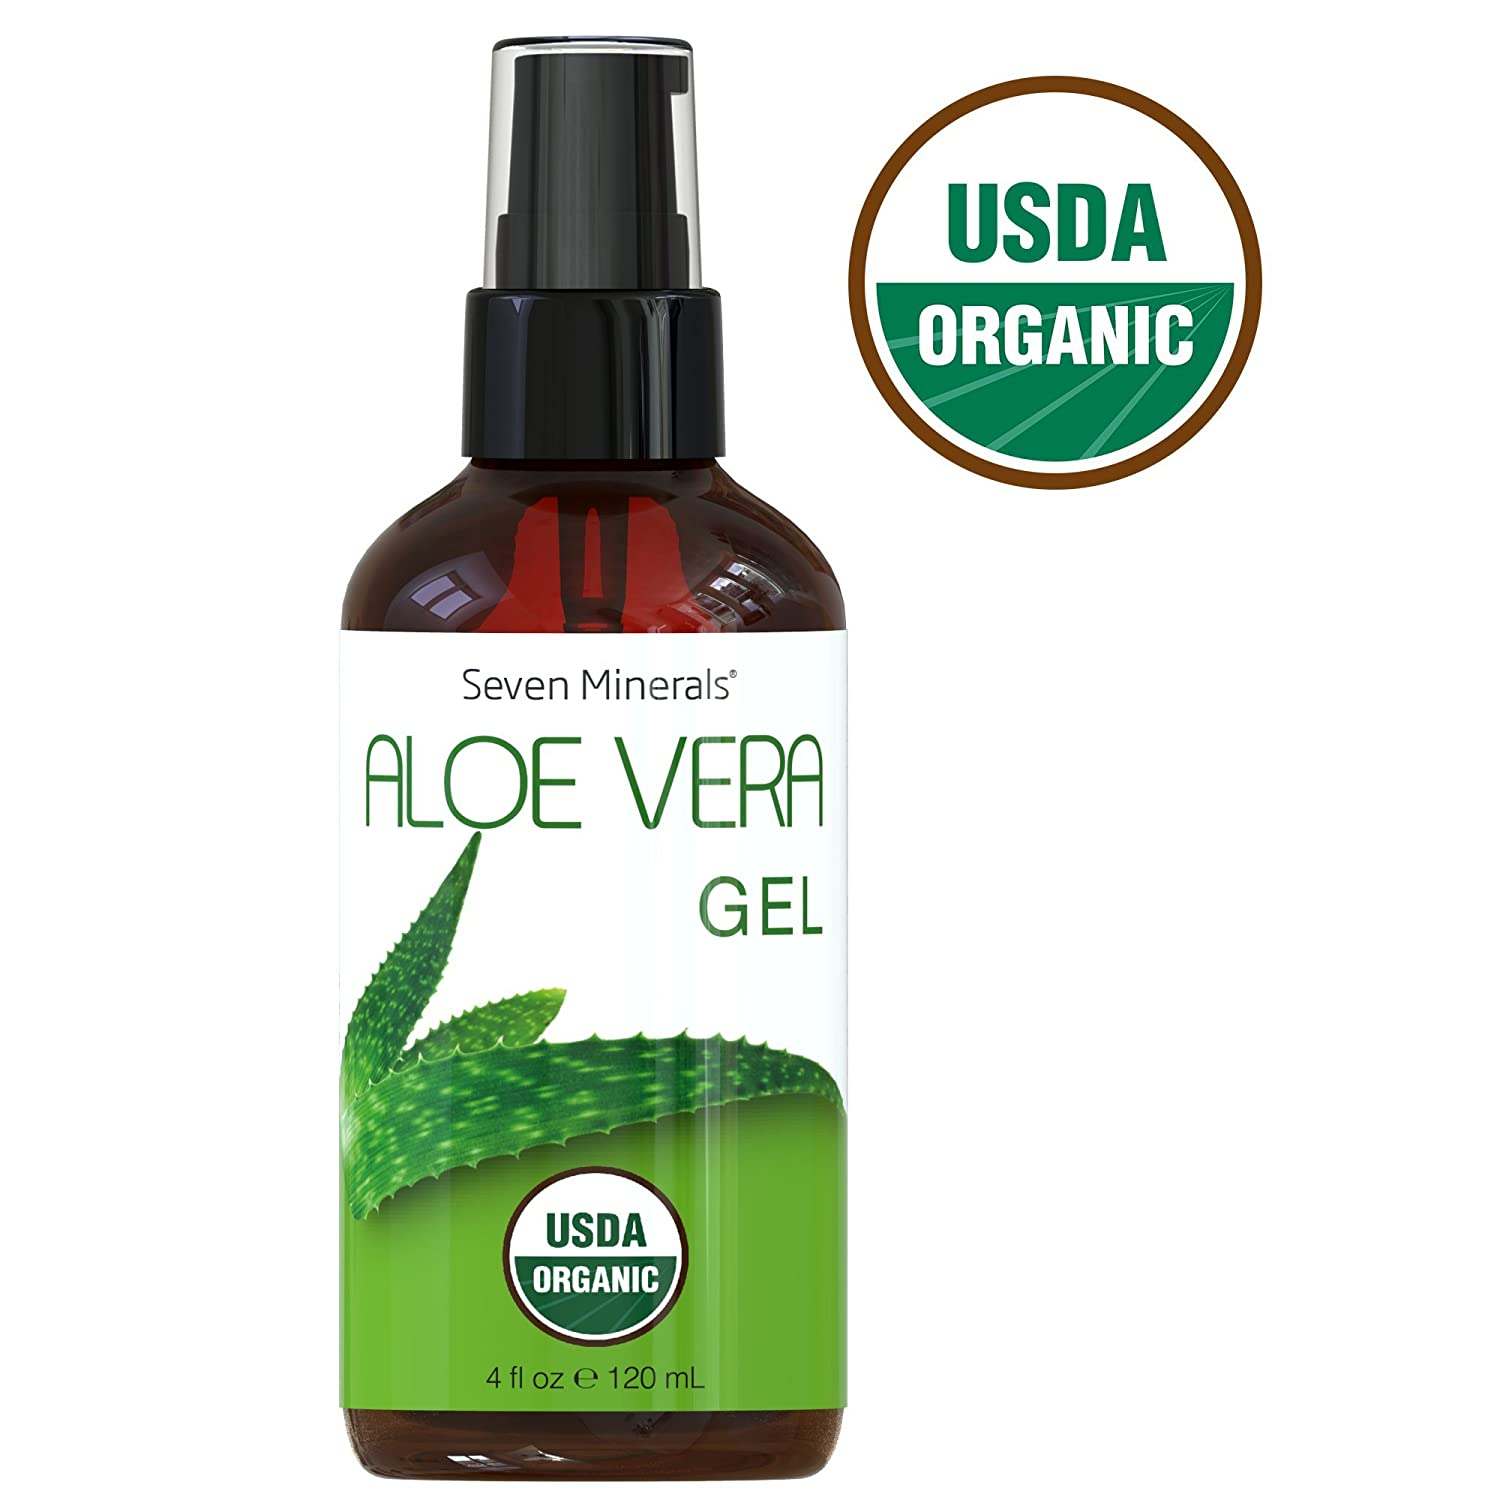 #1 USDA Organic Aloe Vera Gel by Seven Minerals – 100% Pure Organic Aloe, With No Toxic Chemicals Or Preservatives – For Healthy Skin, Hair, And After Sun Relief - 4 fl oz